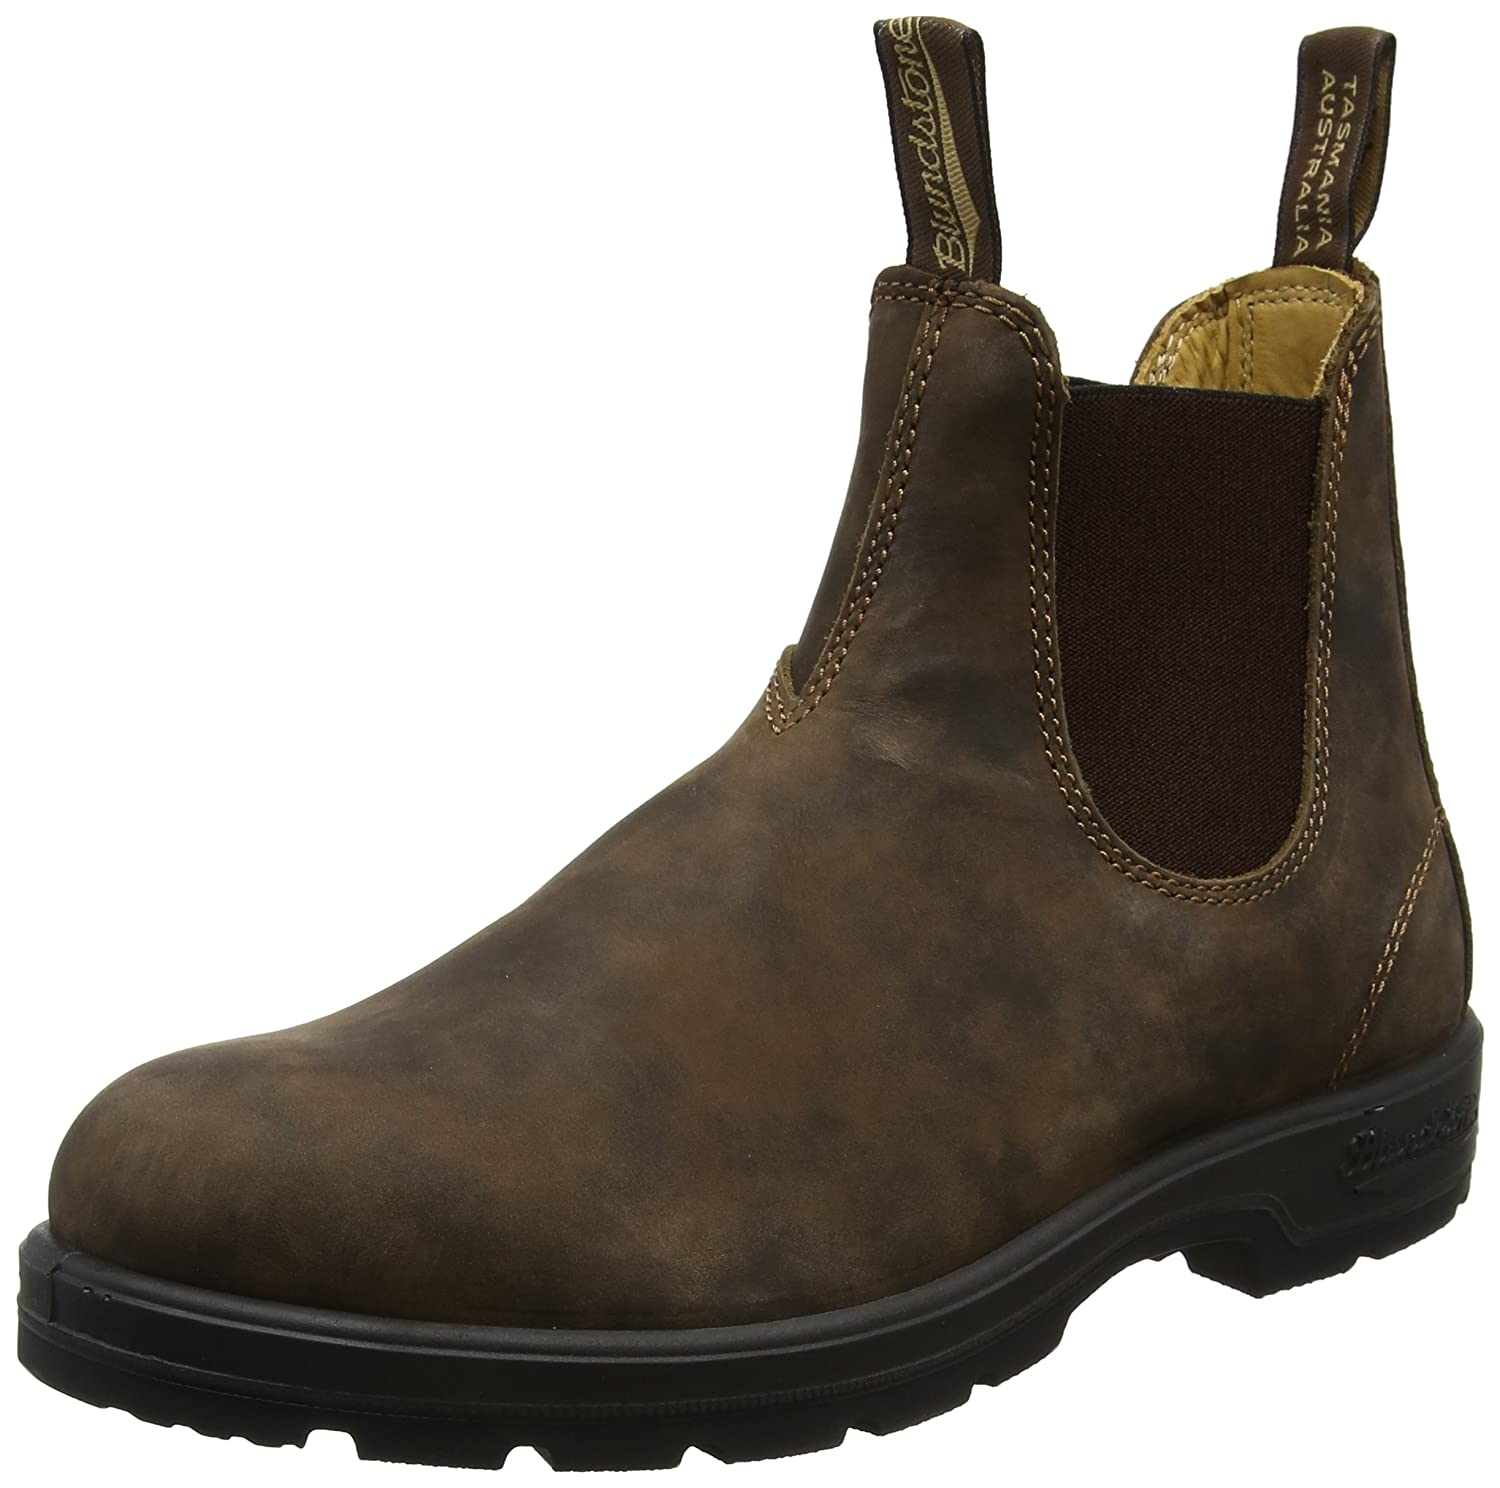 Blundstone Unisex Super 550 Series Boot B073RMWGQK 9 D(M) US|Rustic Brown